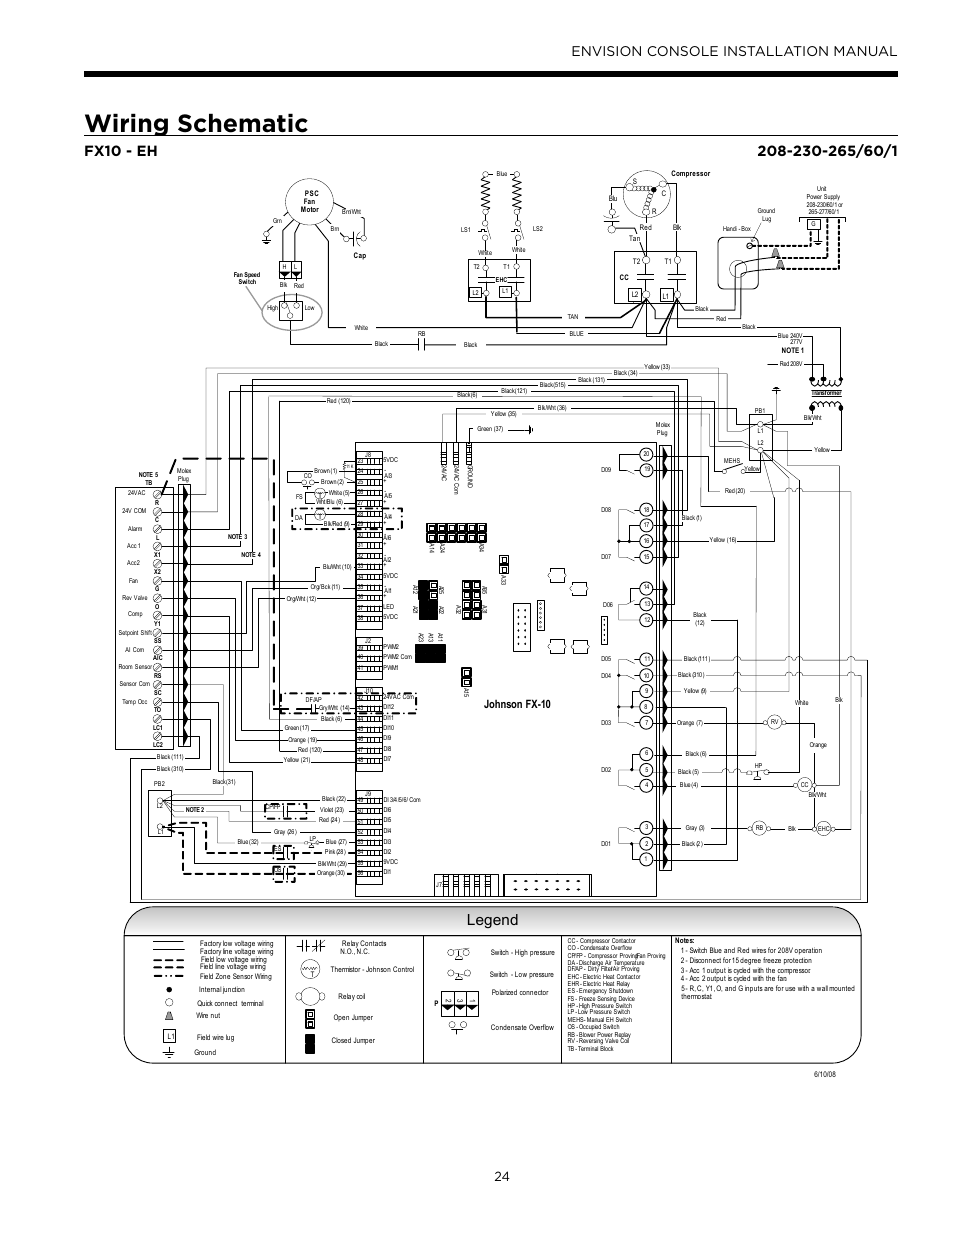 Wiring Schematic Legend Electrical Diagrams Cnt3797 Diagram For Circuit Board Envision Console Installation Manual Symbol